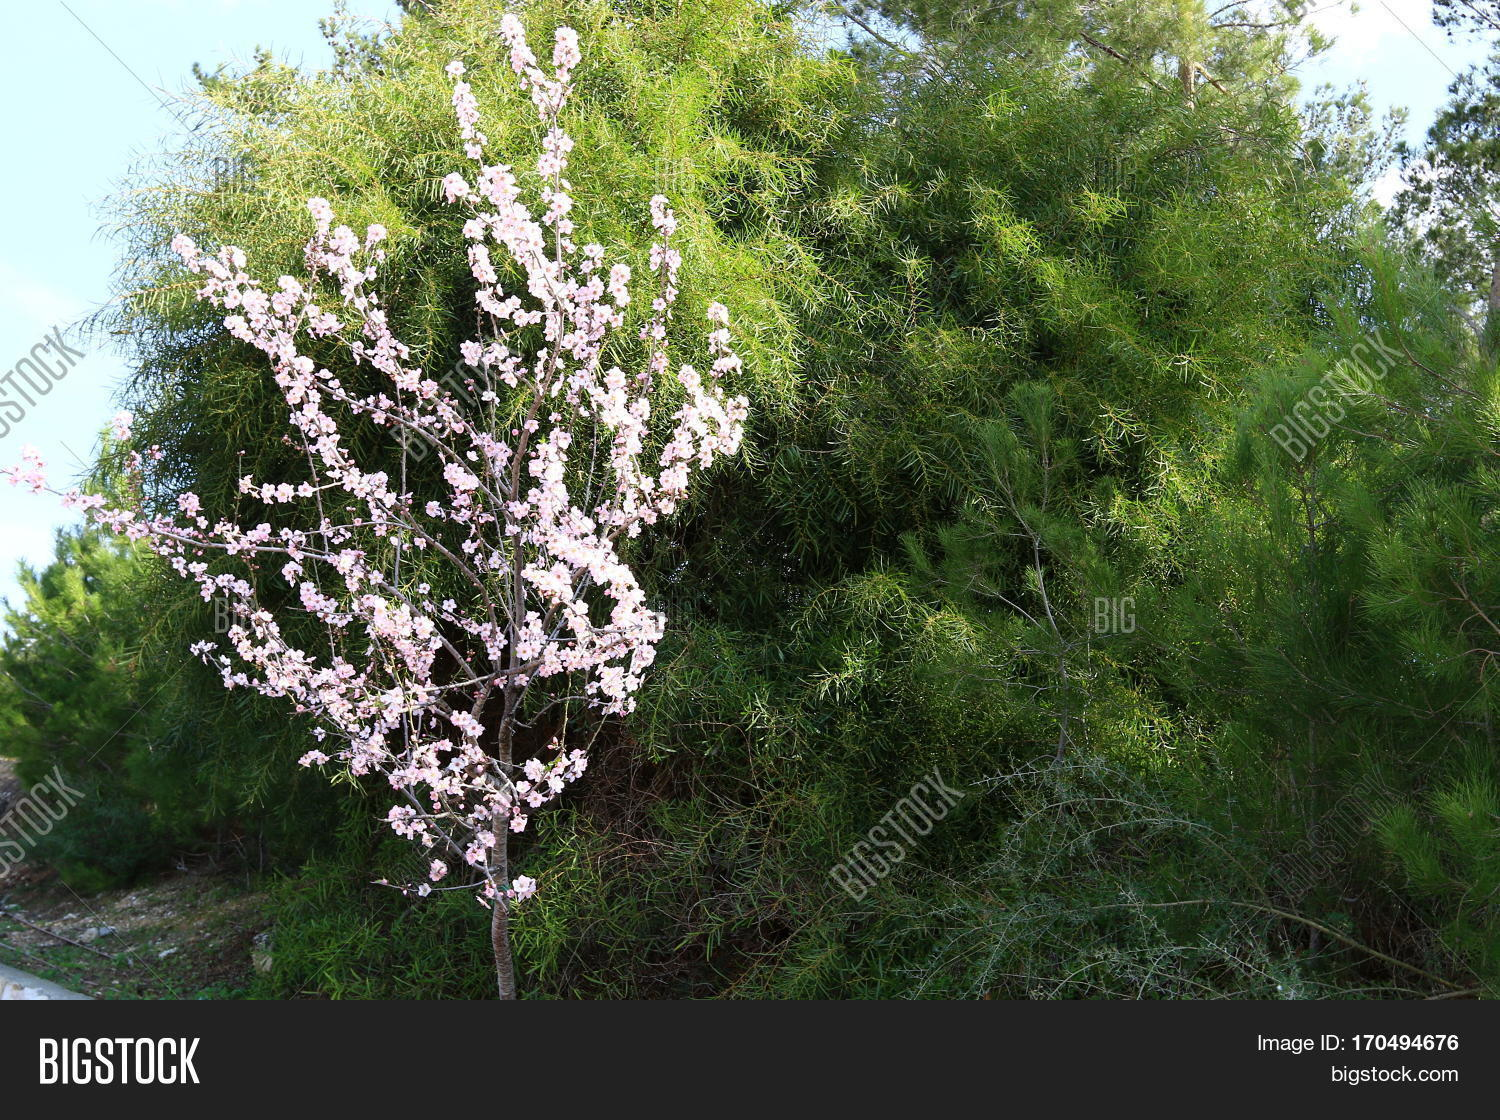 Israel Spring Holiday Image & Photo (Free Trial) | Bigstock